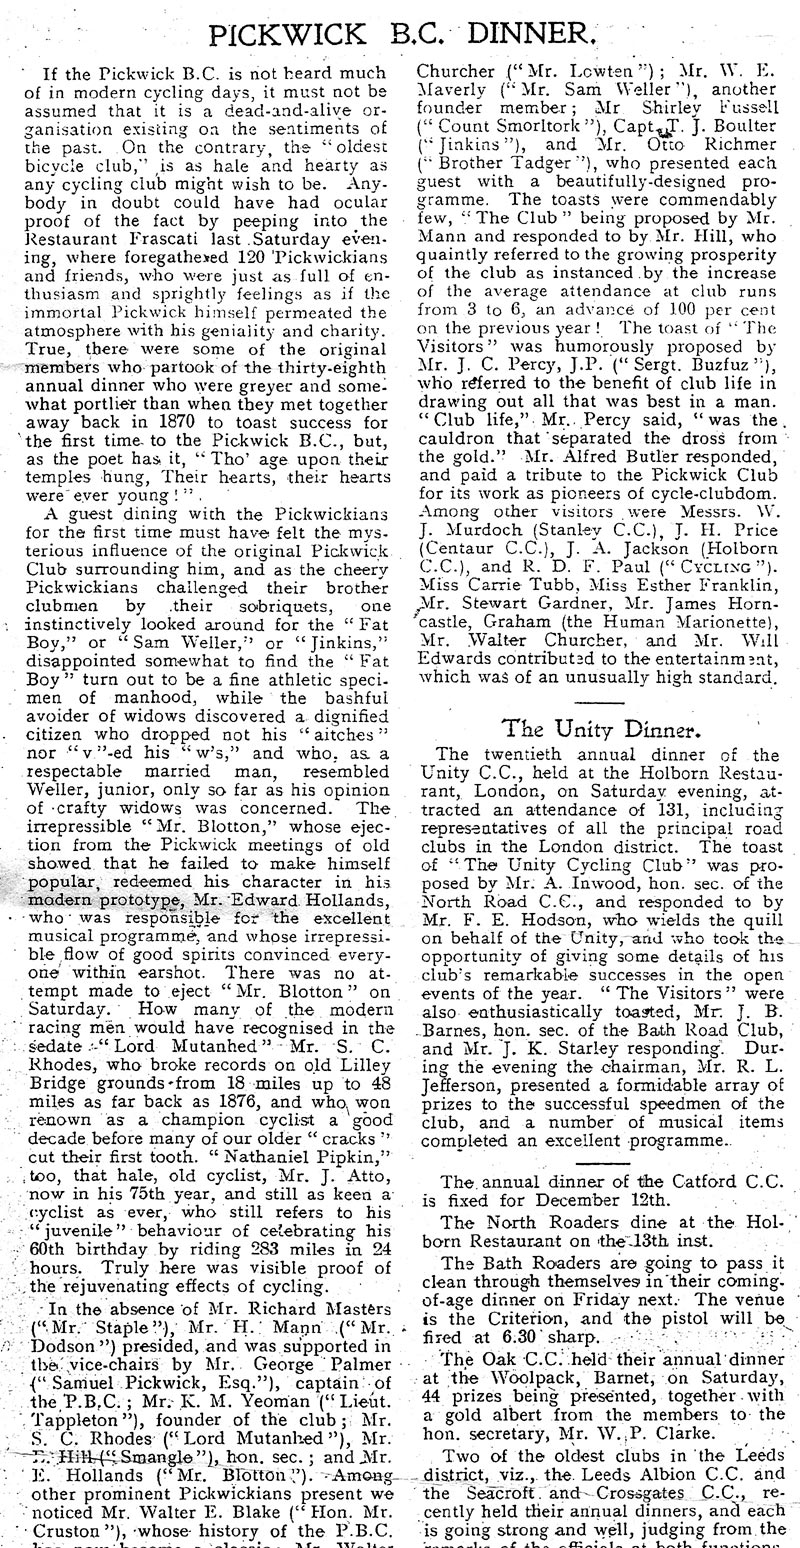 Press report of Annual Dinner 1907